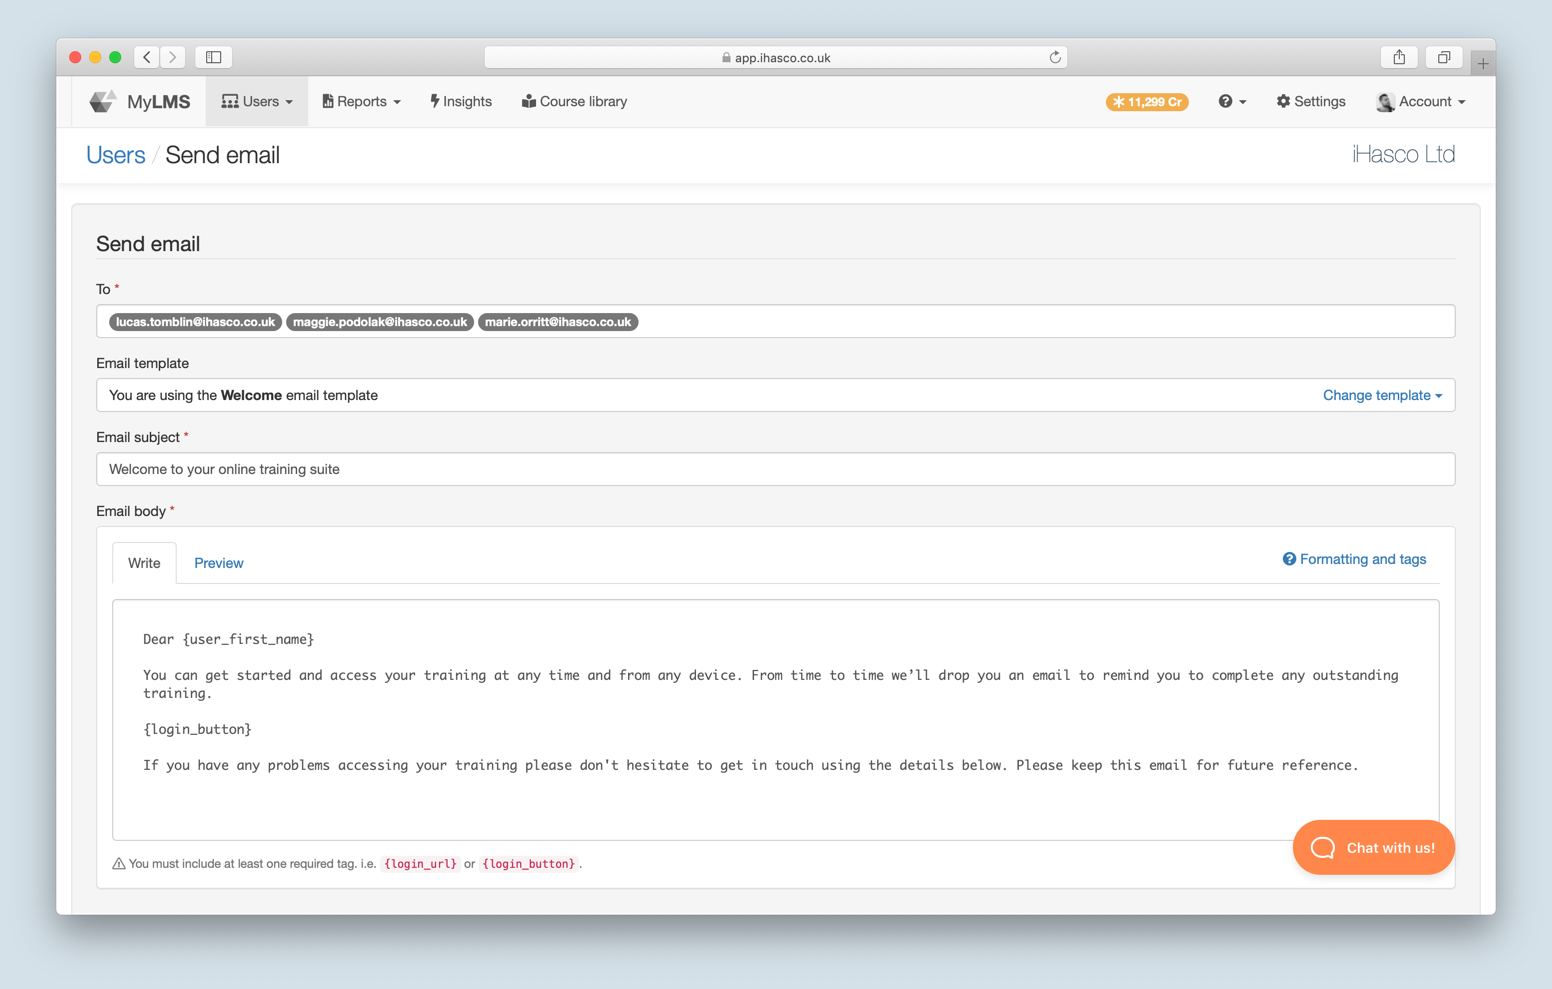 A screenshot of the new compose email screen in the iHASCO client LMS.